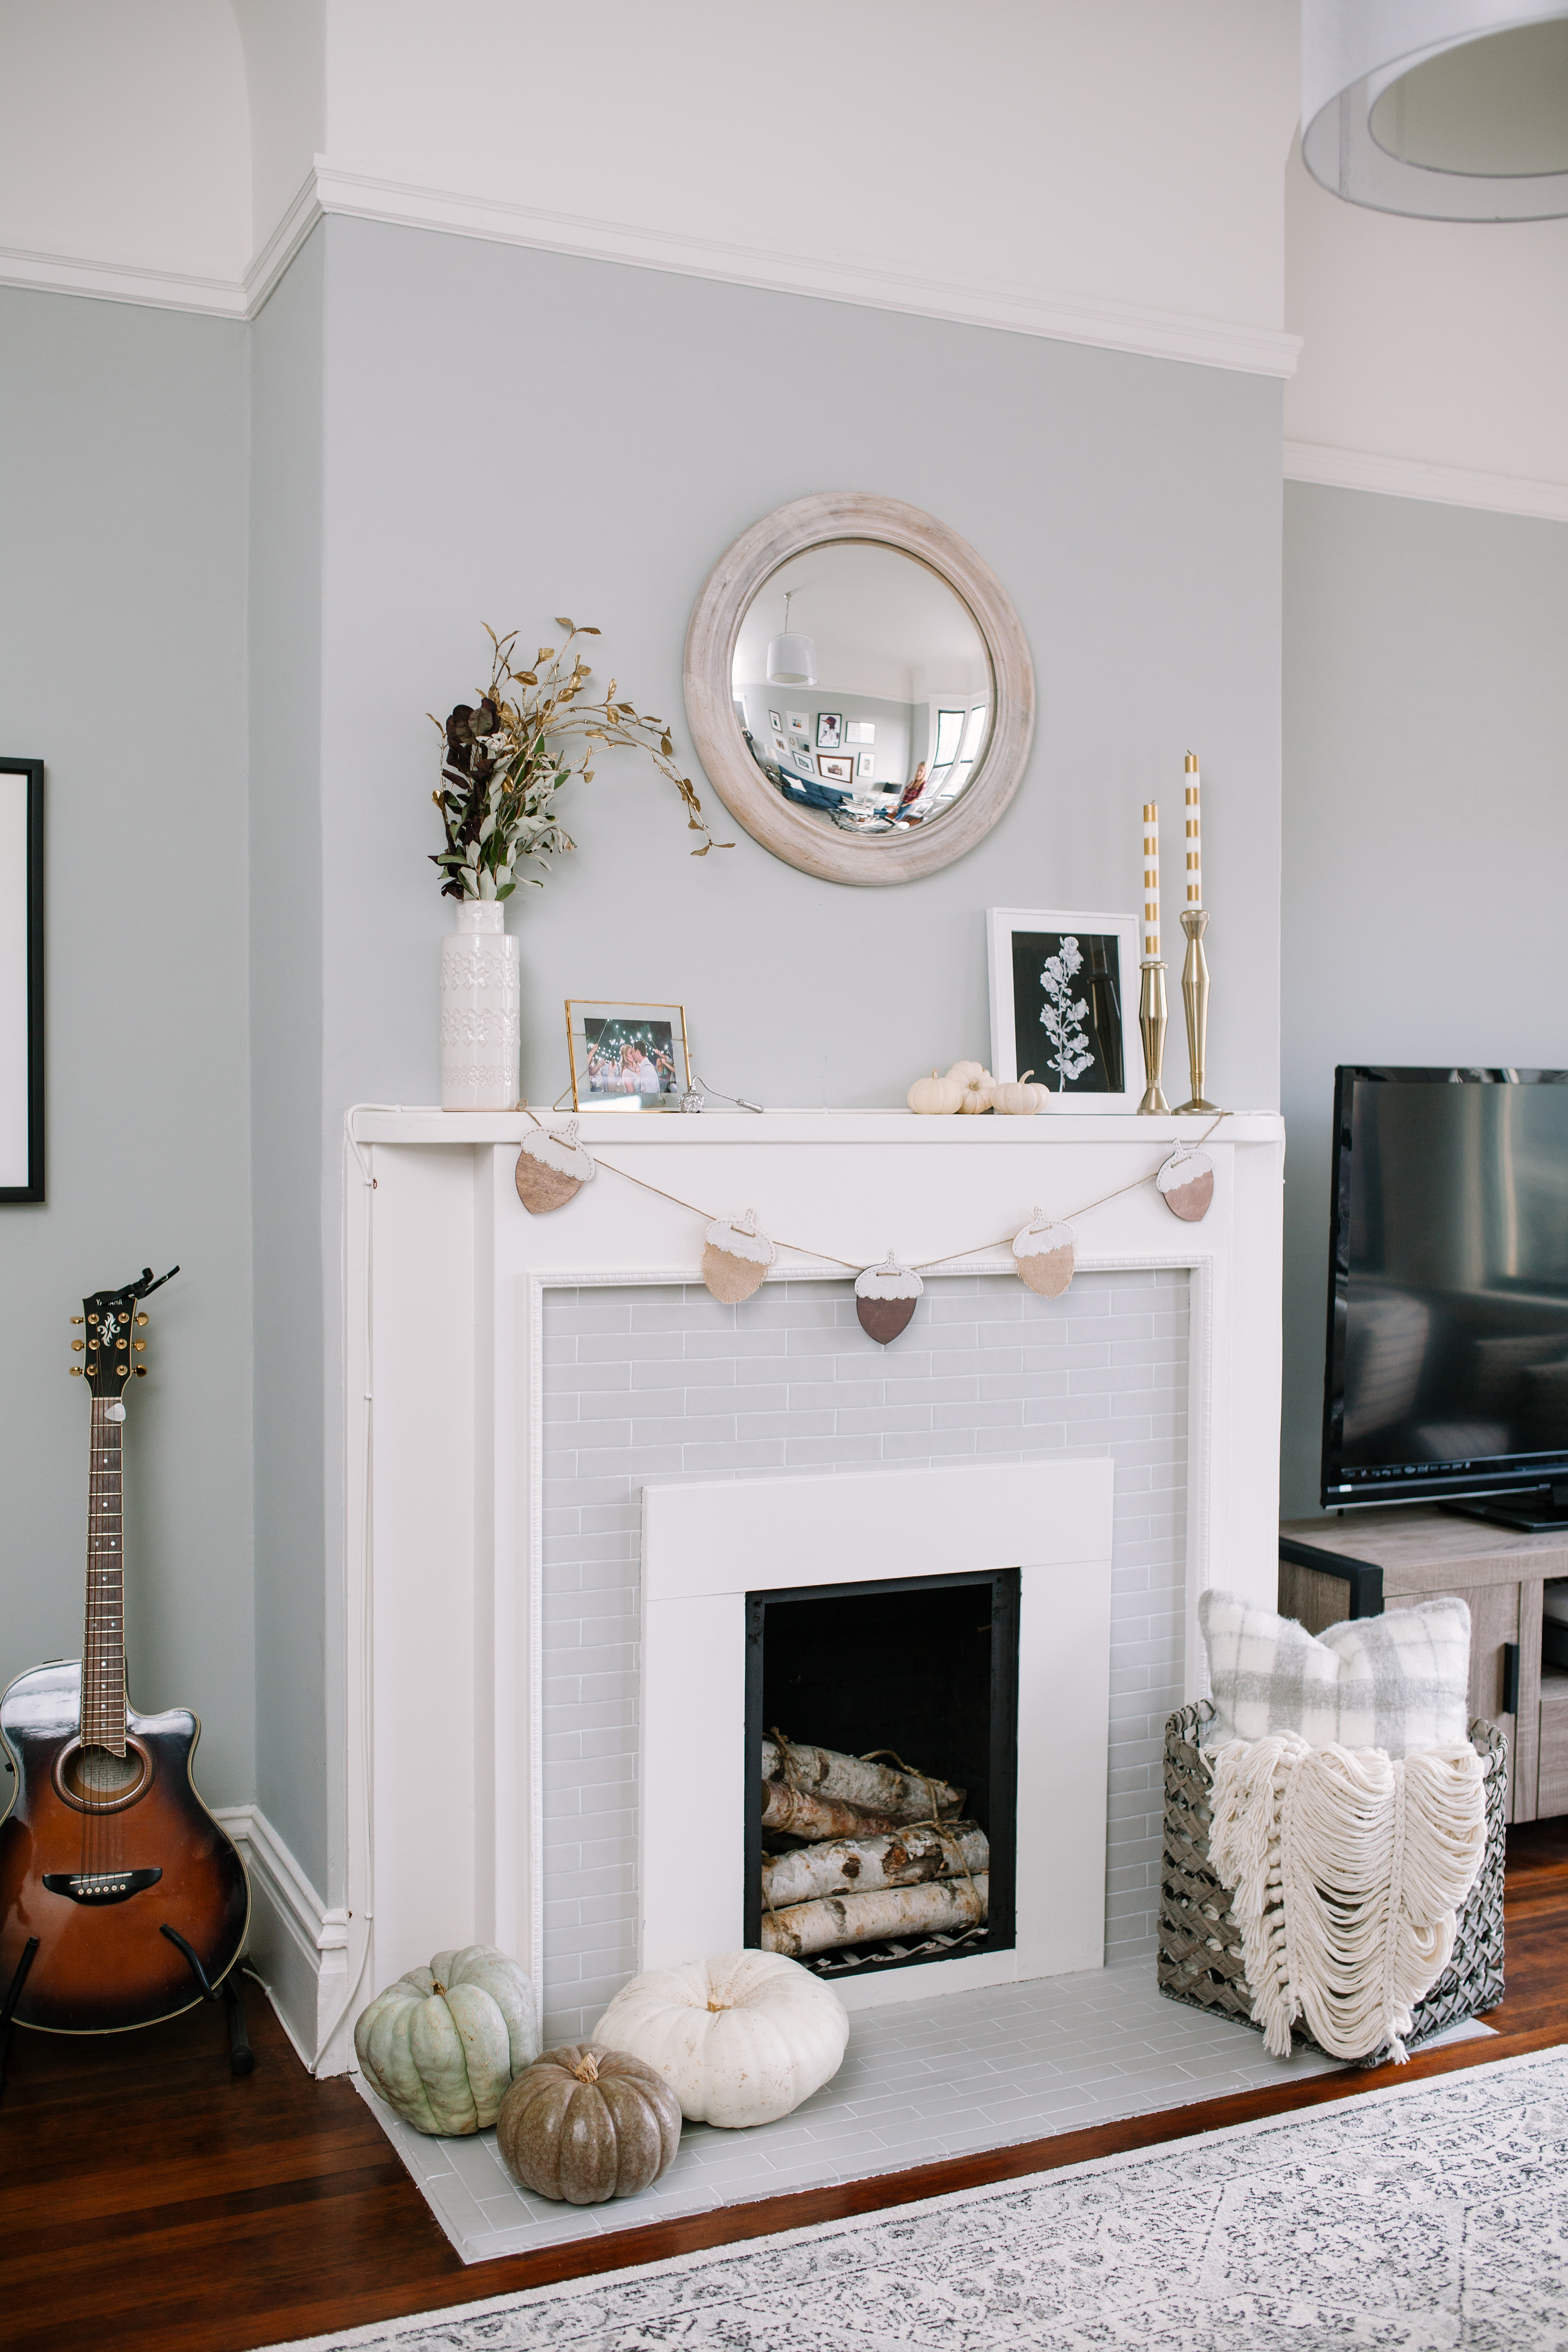 DIY: Painted Tile on a Fireplace (non-working) Makeover ...